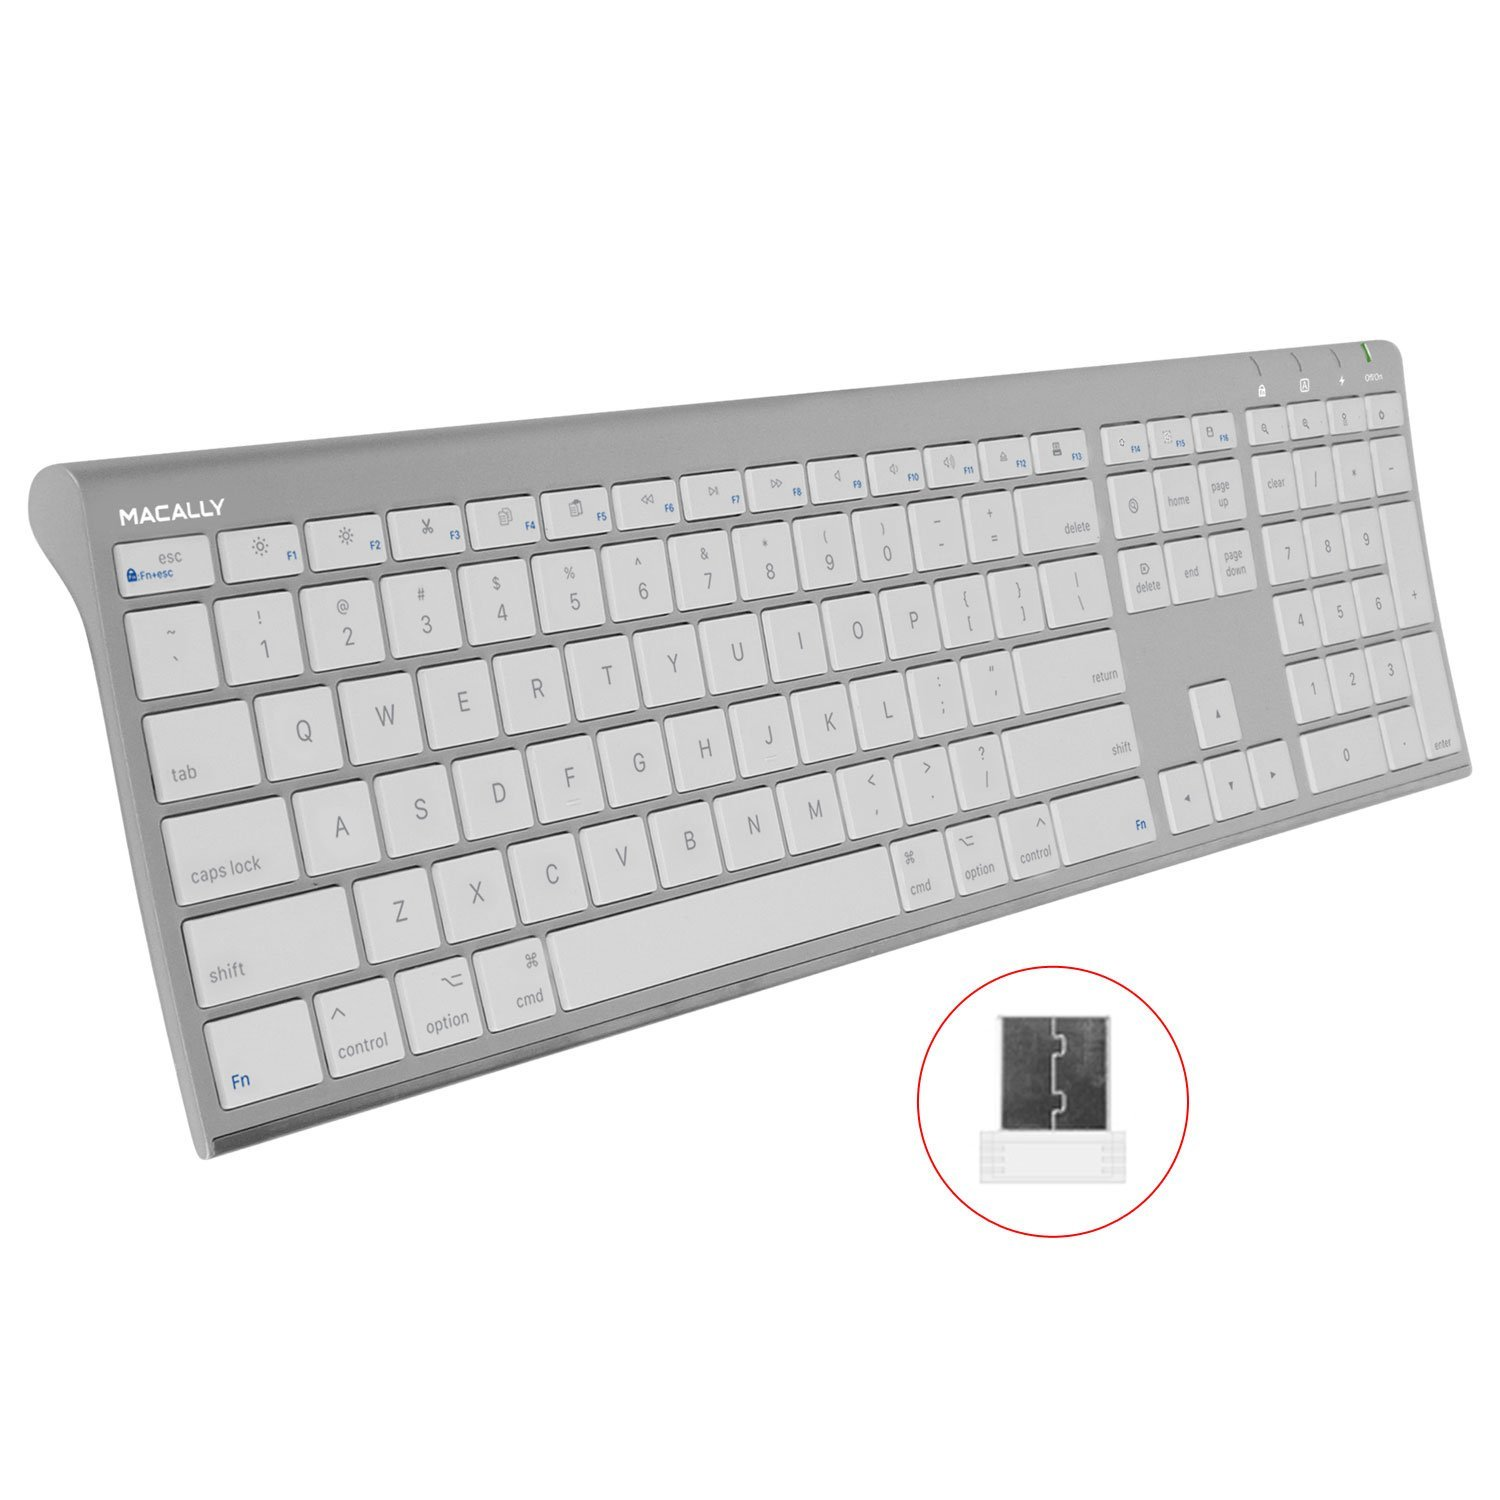 Macally RF Wireless Computer Keyboard (Full-Size) with Compact 2.4GHz Dongle USB Receiver for Apple MacBook Pro, Air Laptops or iMac, Mac Mini Desktops | Plug and Play (Ultra-Slim) by Macally